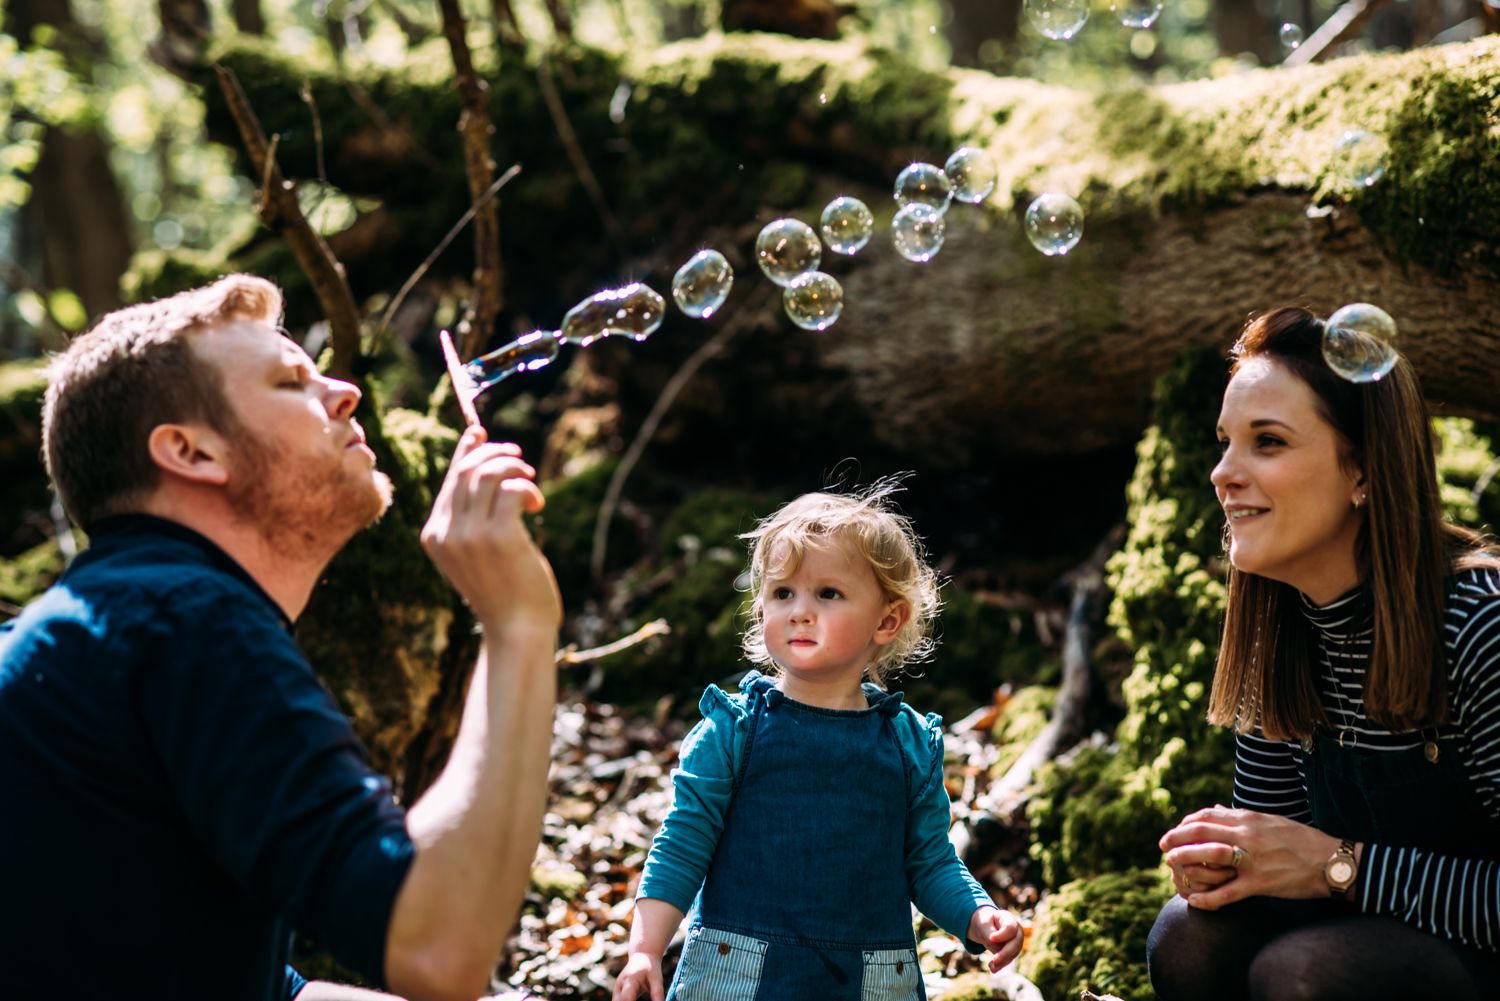 A family of three sit amongst bluebells blowing bubbles in a beautiful outdoor setting for this relaxed, unposed family photoshoot in Bath, Somerset.